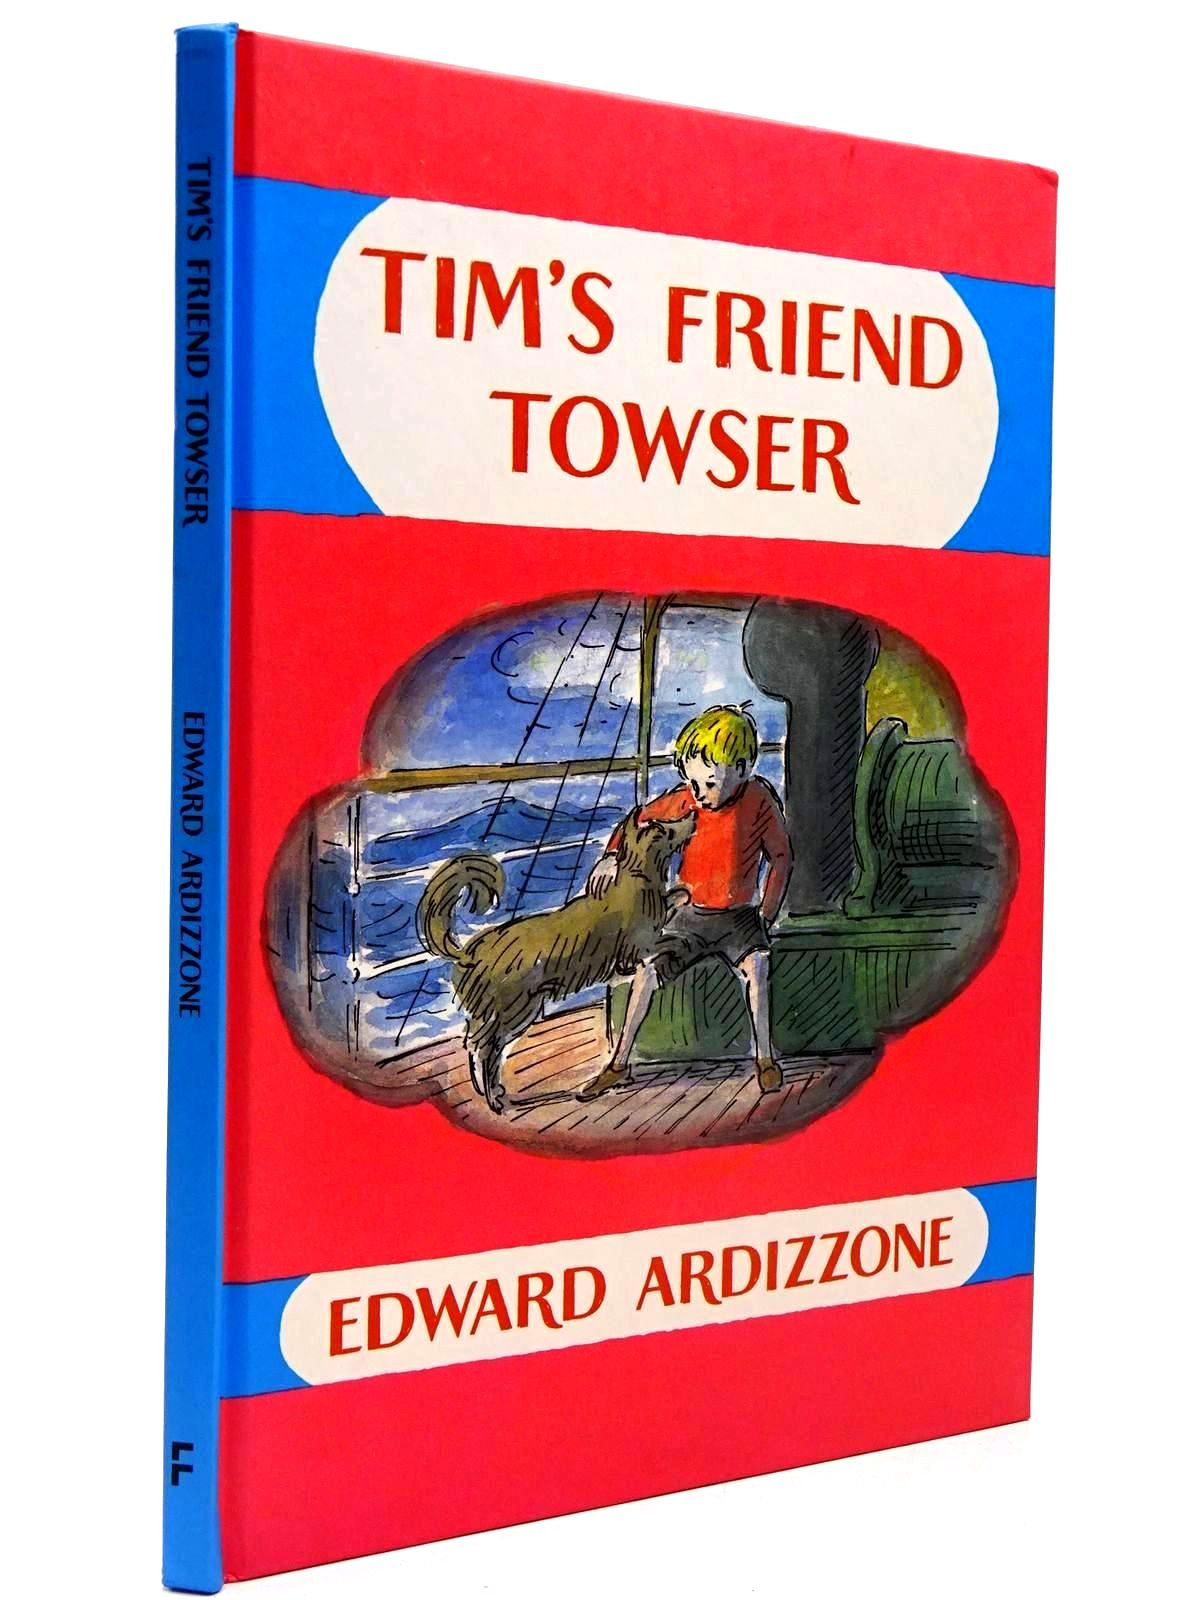 Photo of TIM'S FRIEND TOWSER written by Ardizzone, Edward illustrated by Ardizzone, Edward published by Frances Lincoln Children's Books (STOCK CODE: 2130194)  for sale by Stella & Rose's Books